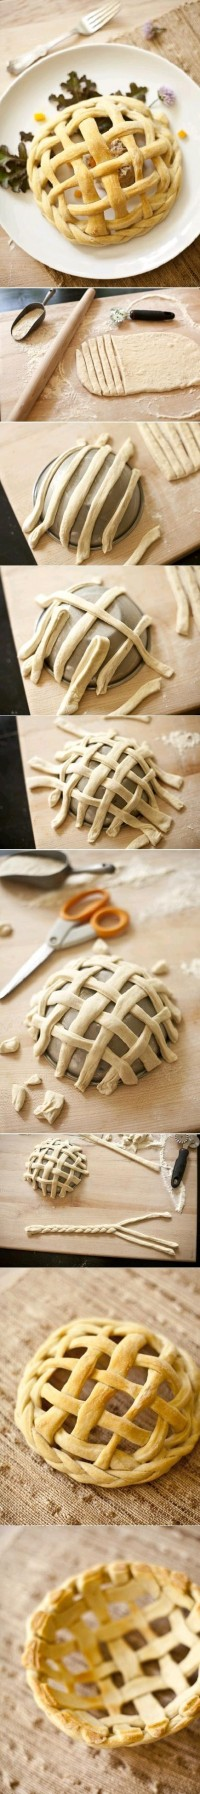 DIY Tasty Basket DIY Projects | UsefulDIY.com